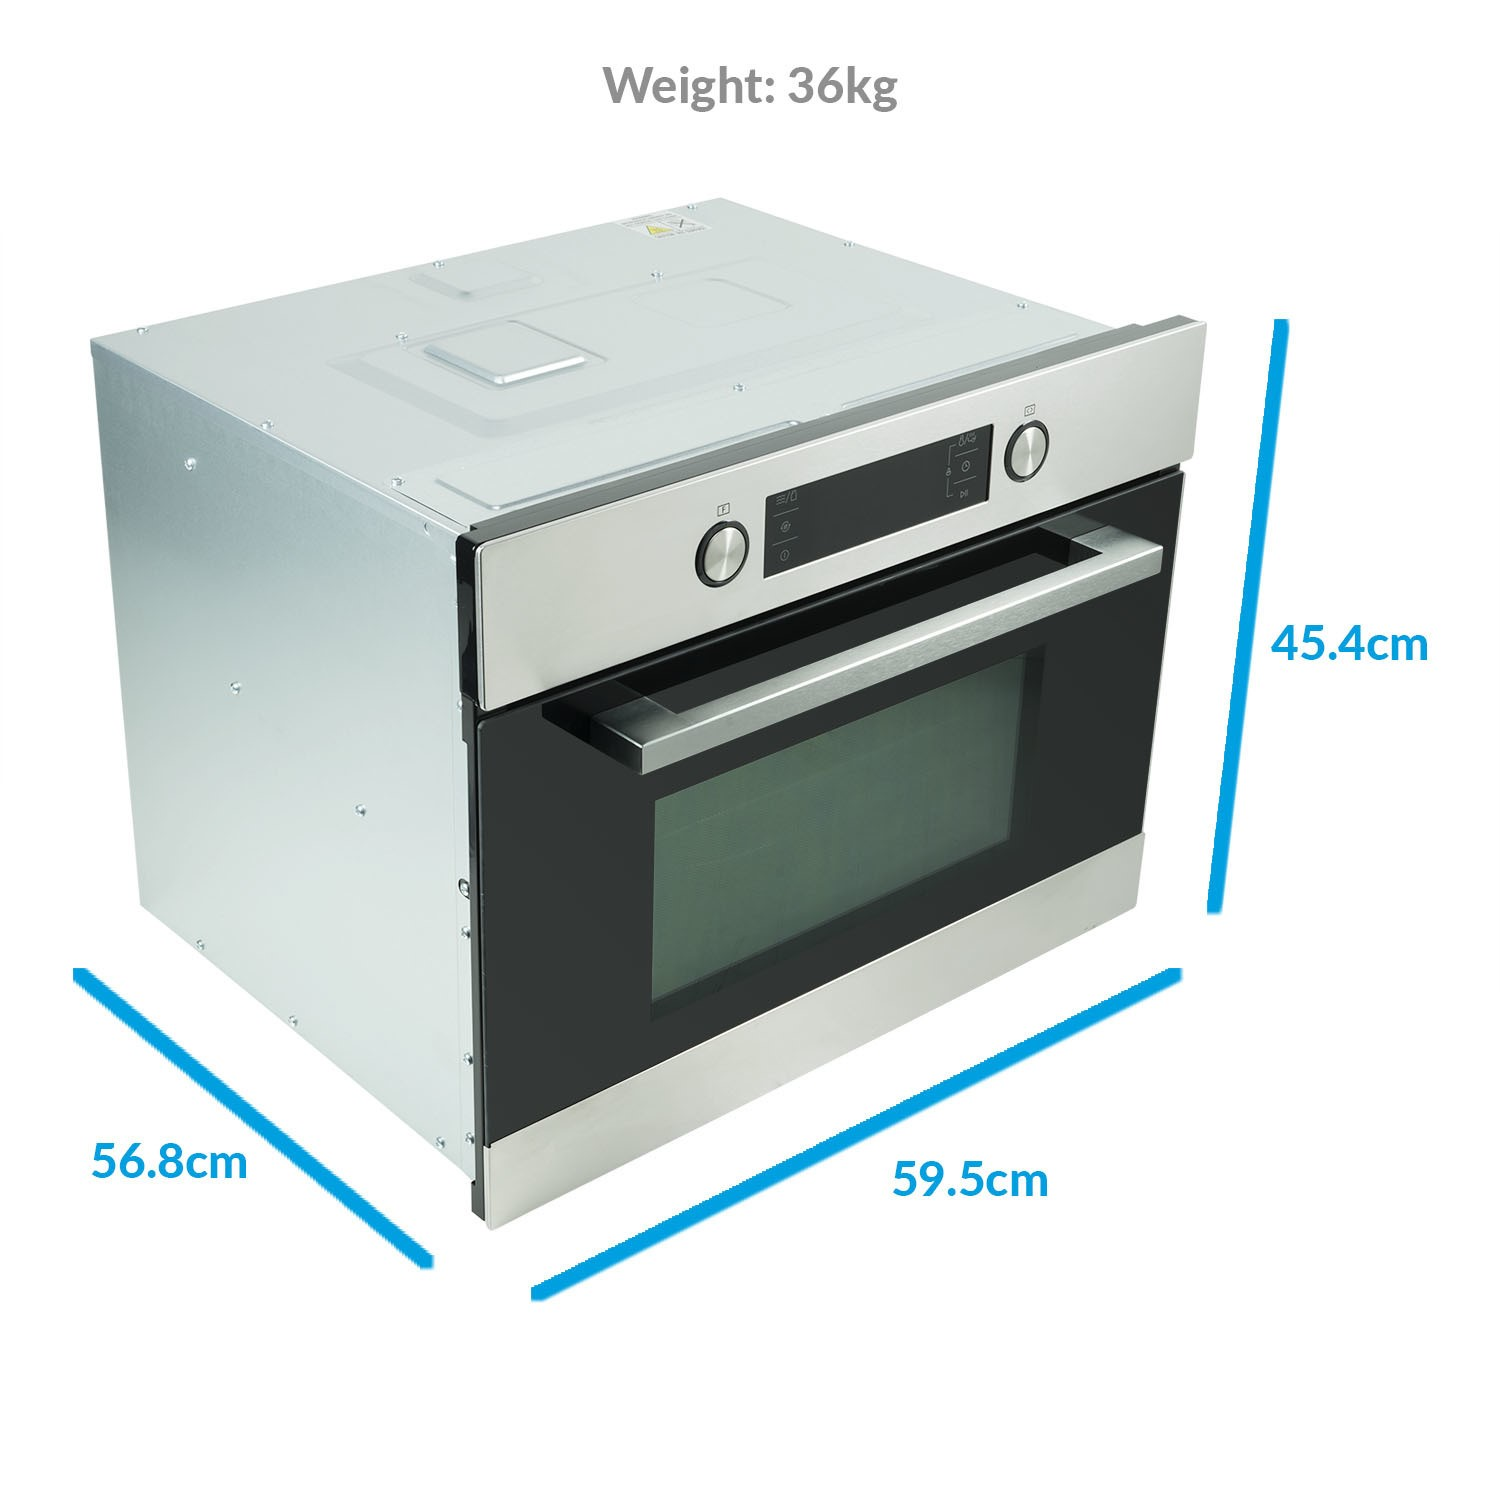 microwave and oven combo dimensions